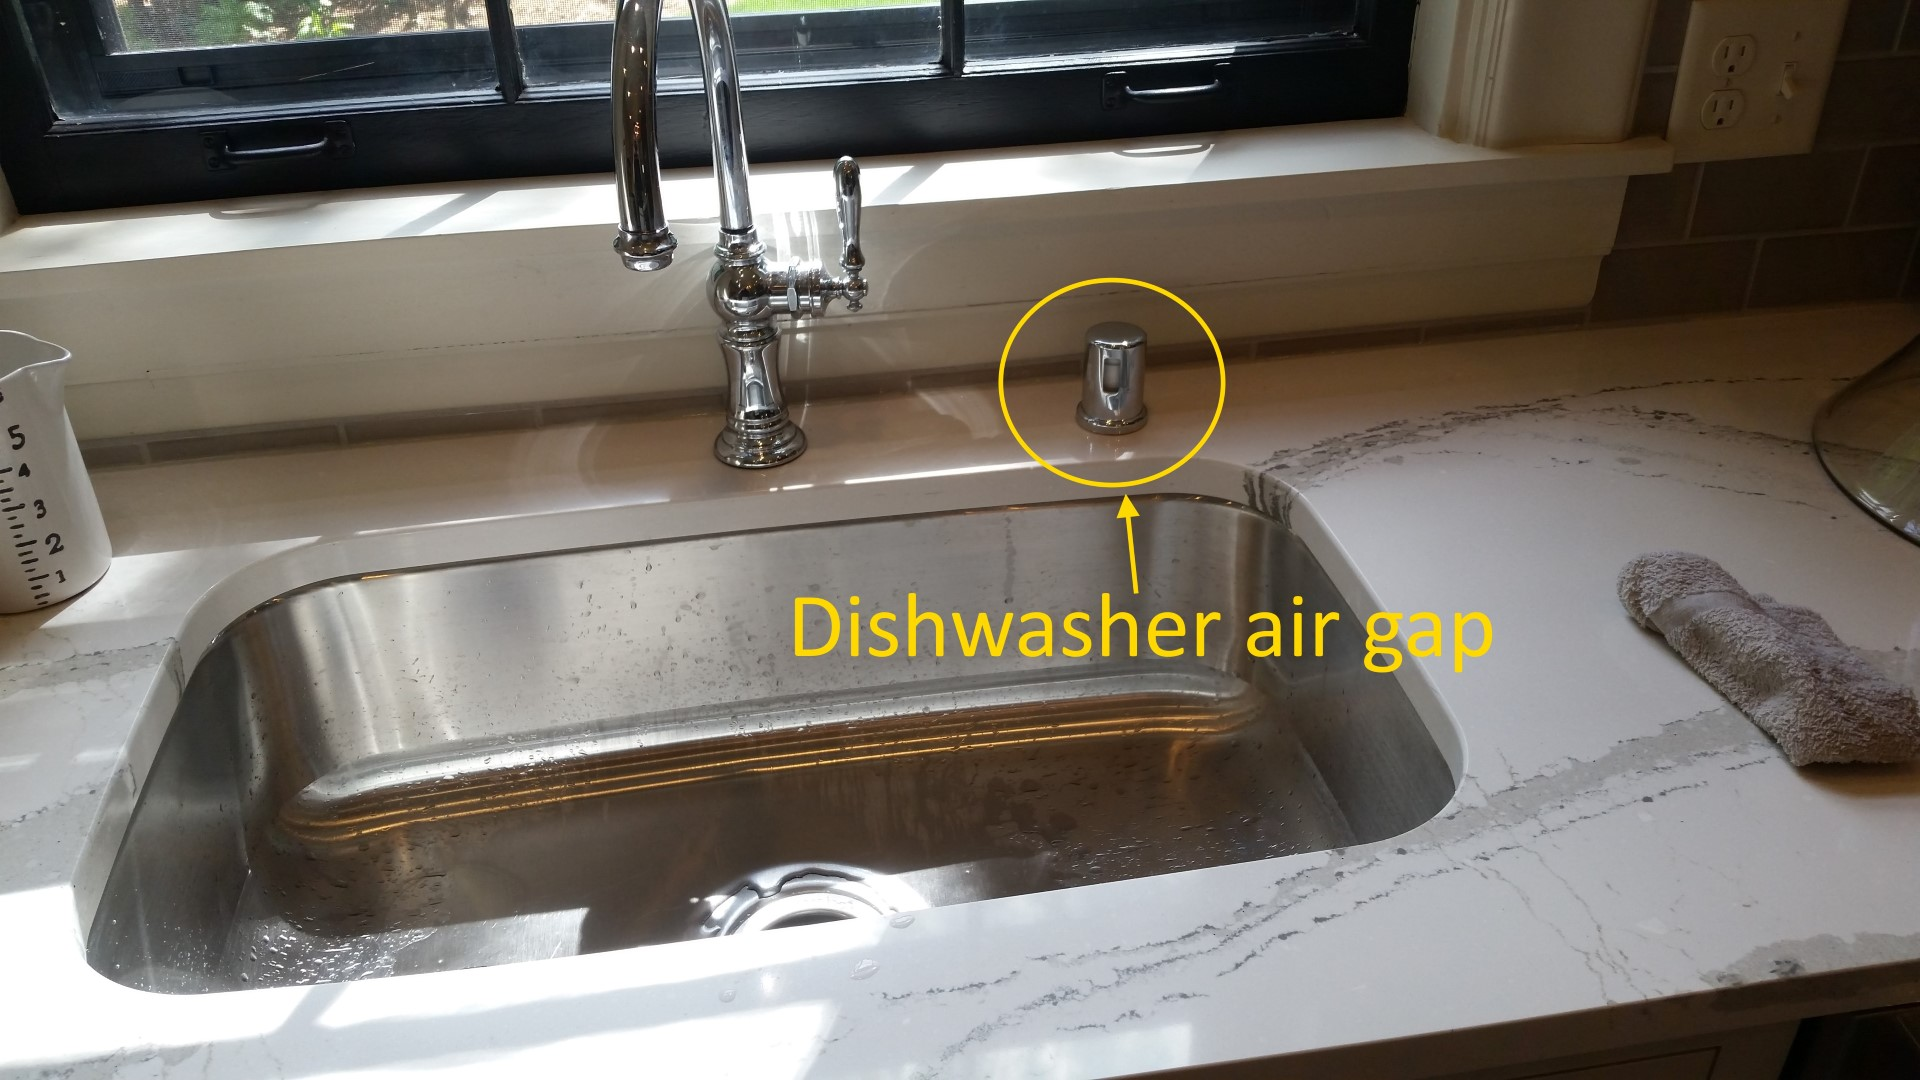 Superieur A Dishwasher Air Gap Is An Egg Sized Device That Gets Mounted Above The Sink  To Help Prevent Contaminated Water From Draining Back Into The Dishwasher.